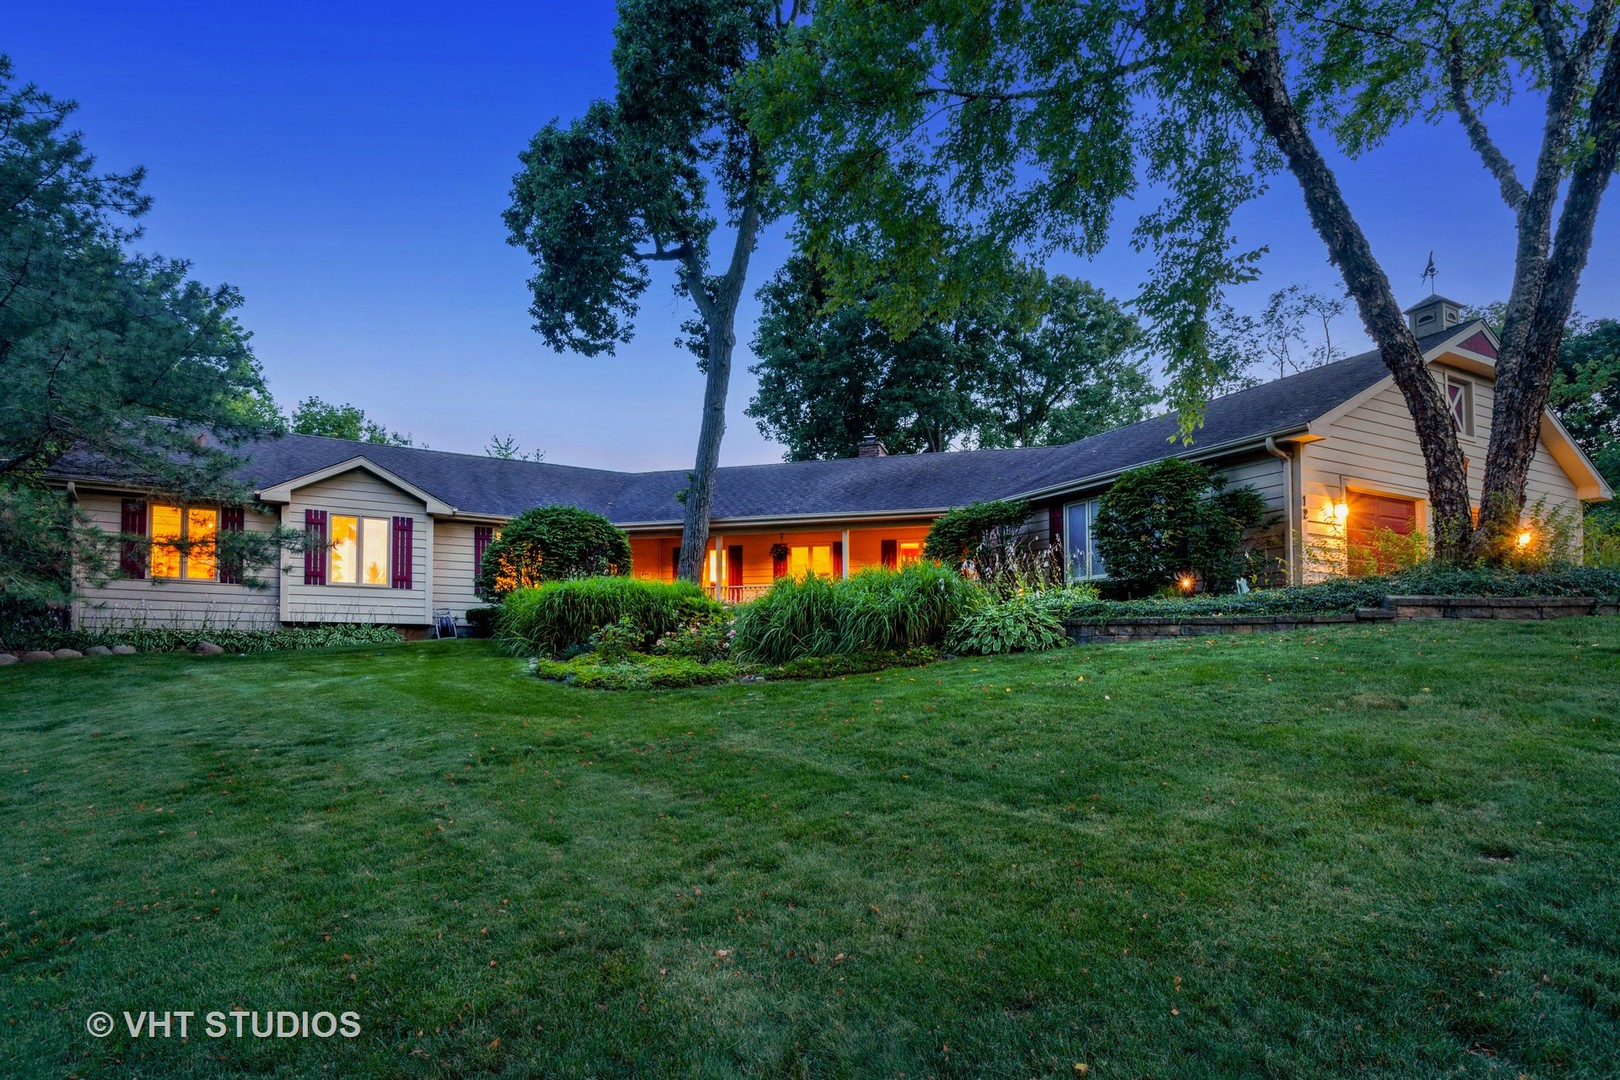 12 Hickory Road, Hawthorn Woods, Illinois 60047